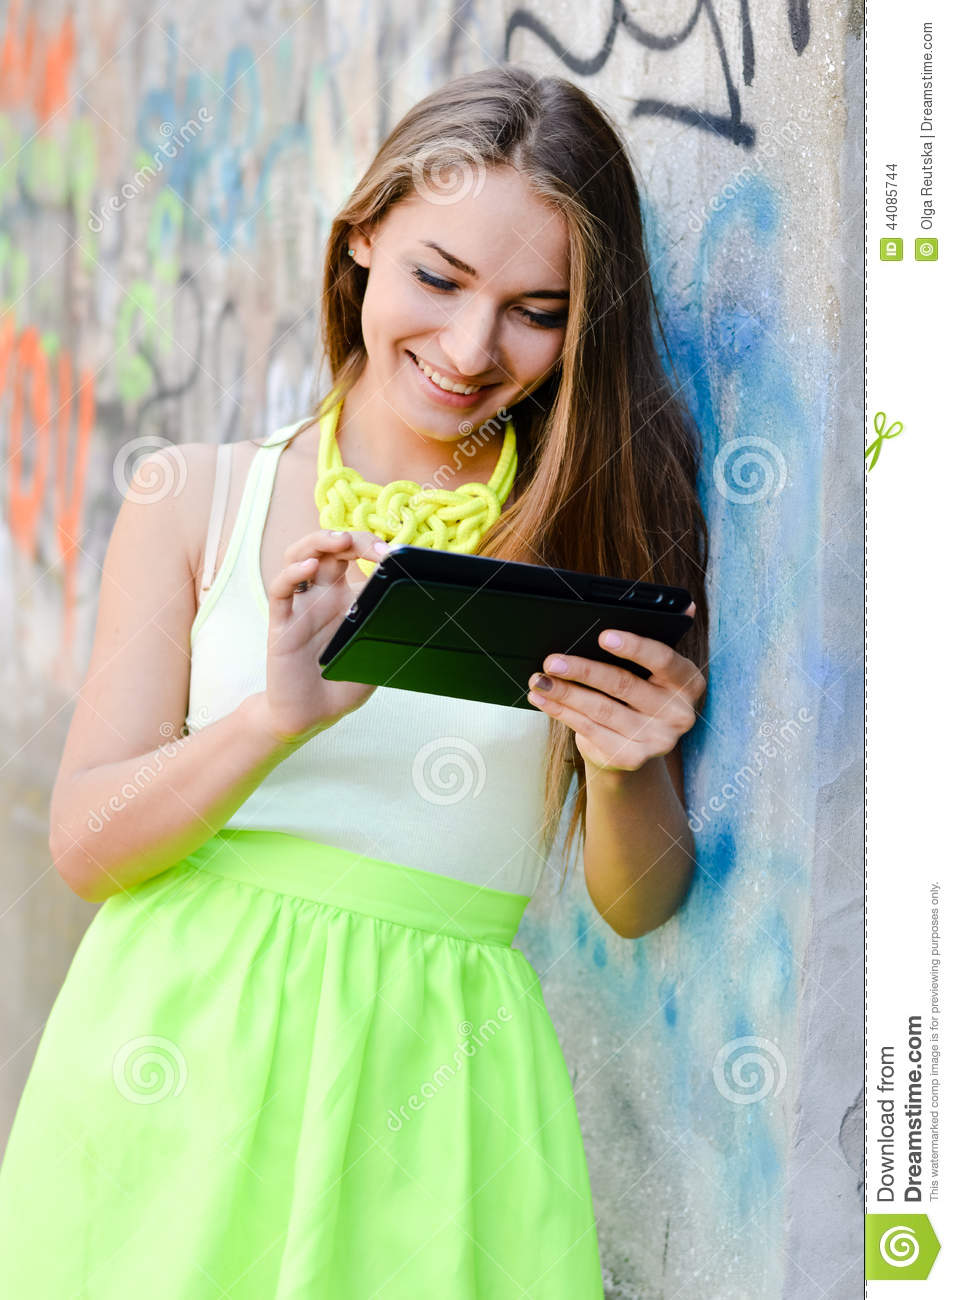 Portrait of beautiful stylish blonde young woman using tablet pc portrait of beautiful stylish blonde young woman using tablet pc computer having fun happy smiling voltagebd Images